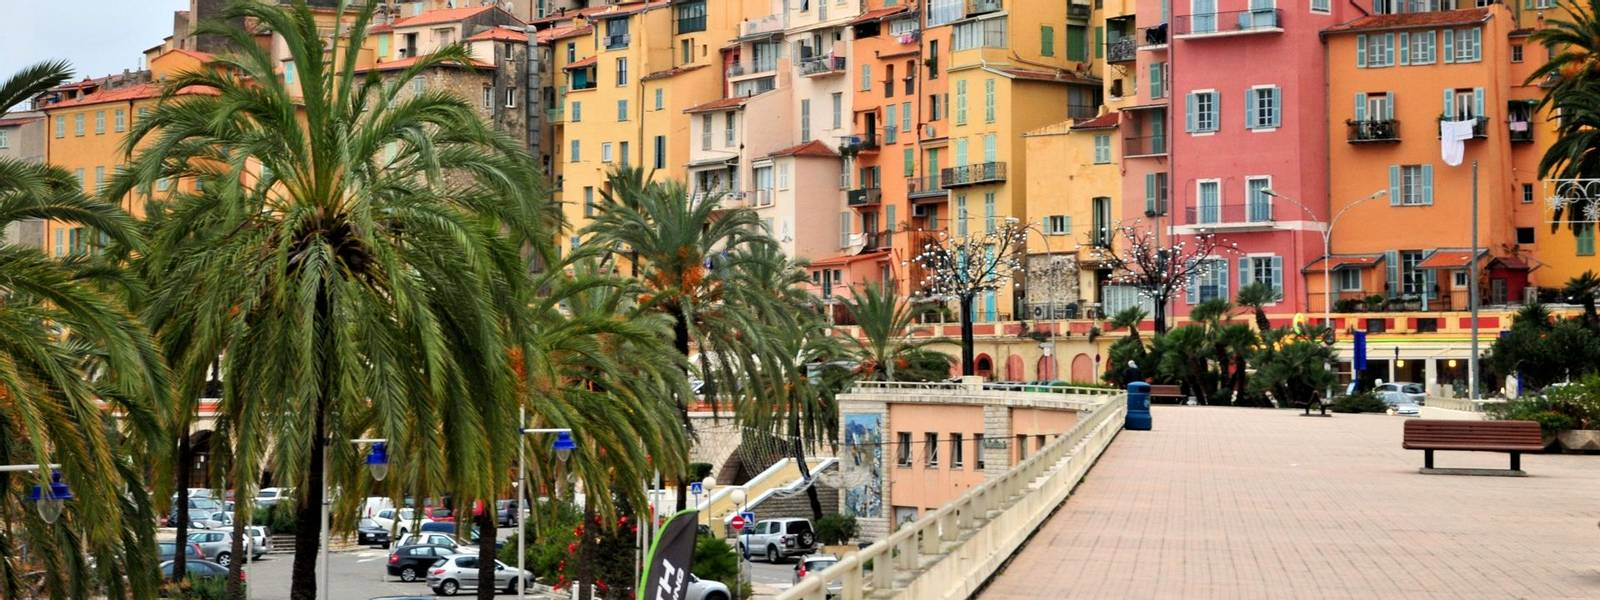 France - French Riviera Bridge Players - AdobeStock_28852064.jpeg